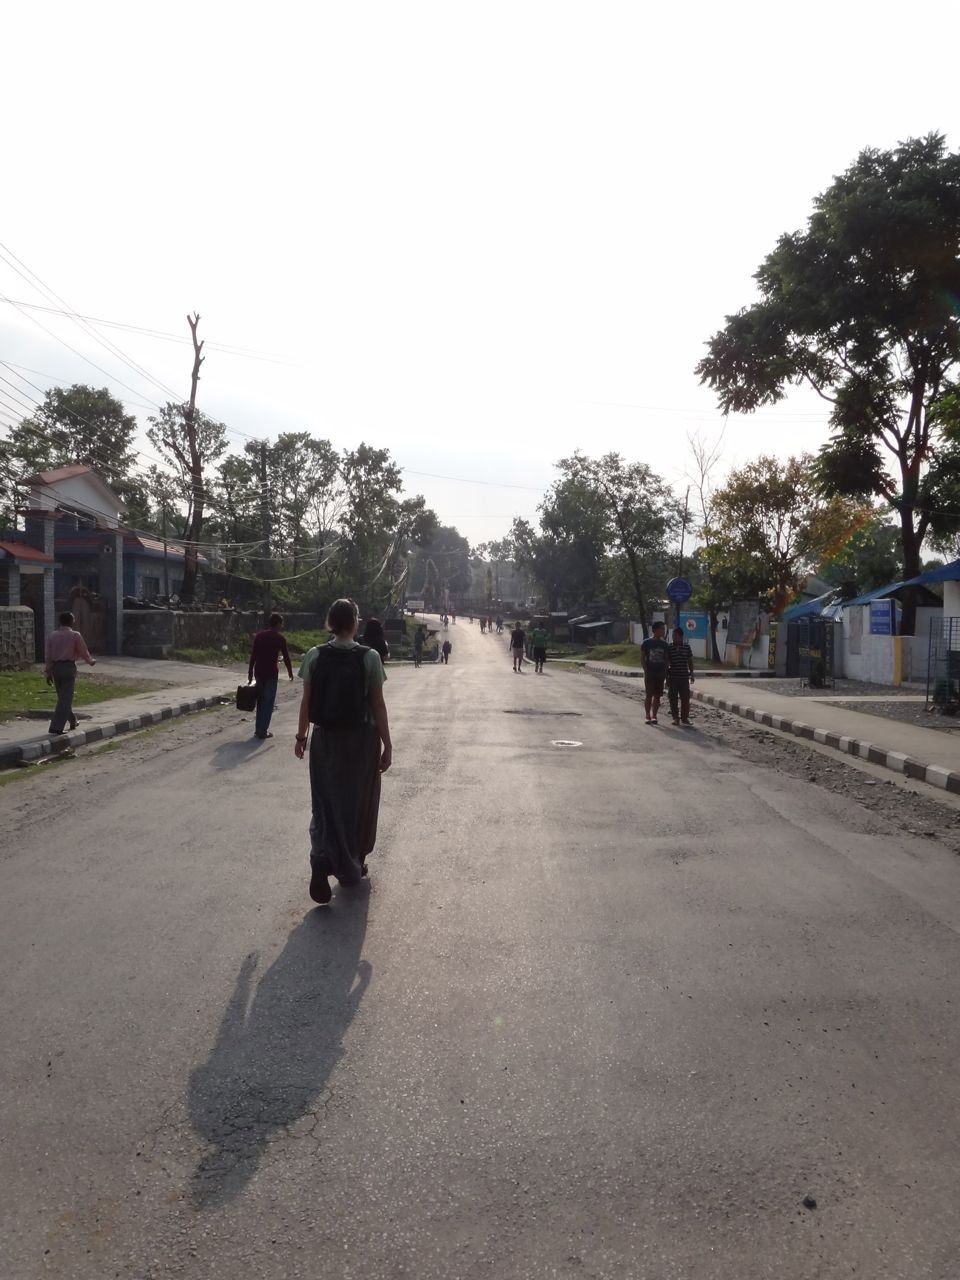 Pokhara. Normally packed streets devoid of vehicles. The bandha meant everyone was walking for another day.